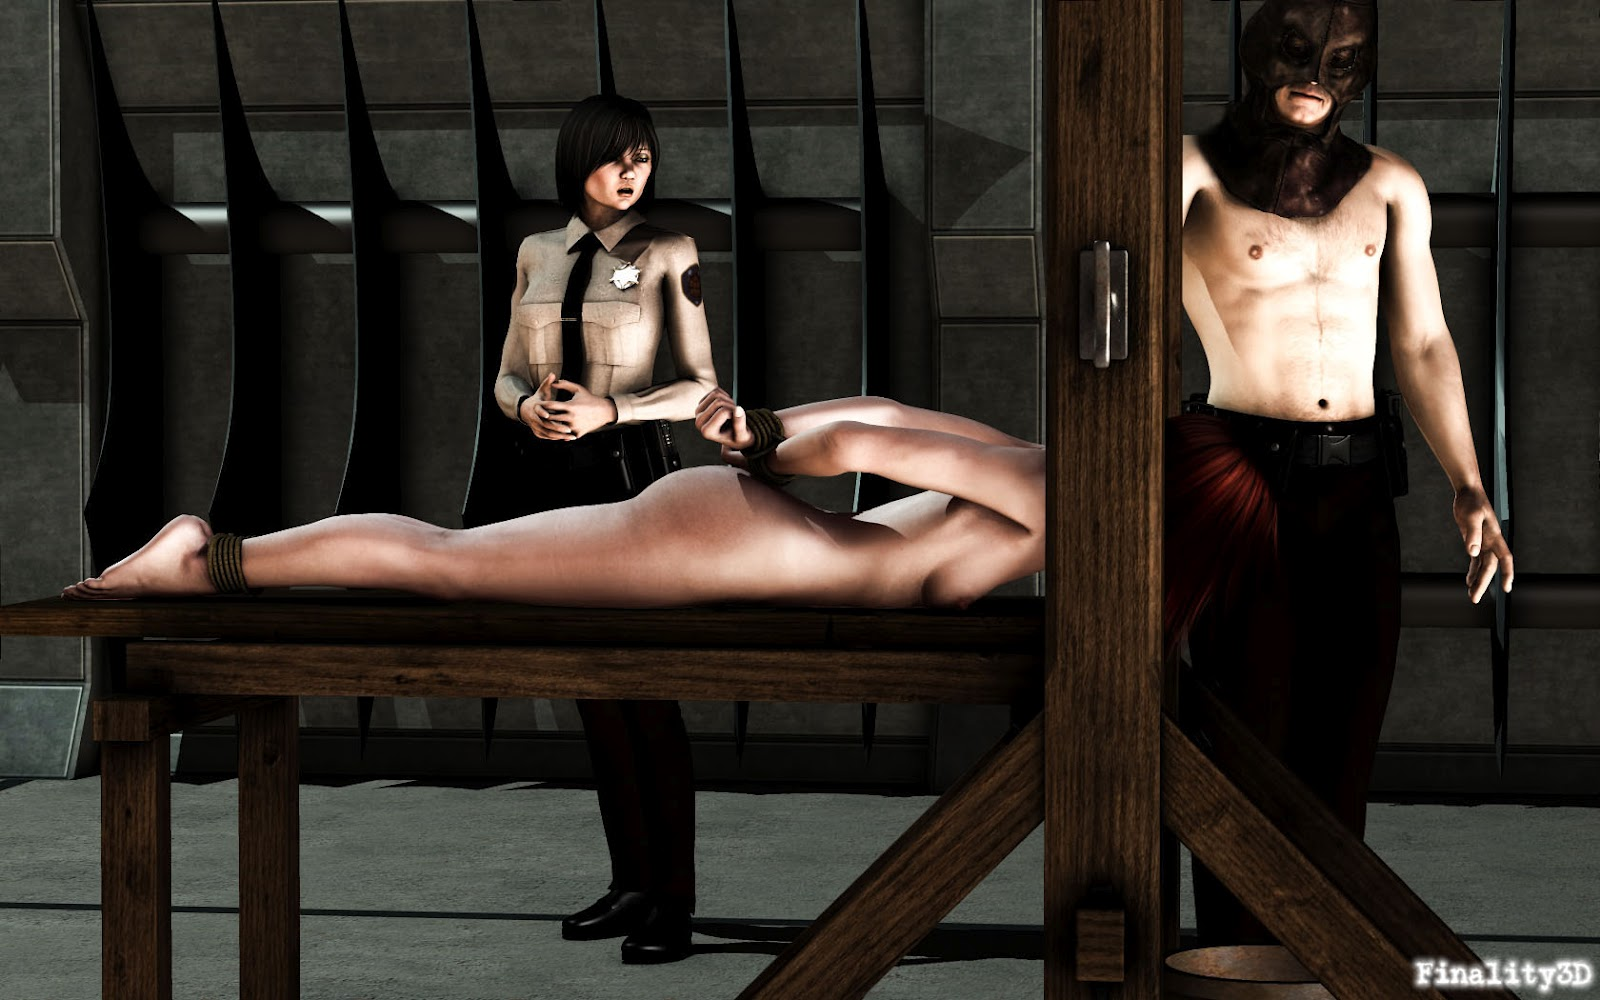 Free bdsm bloody execution pictures porncraft vids